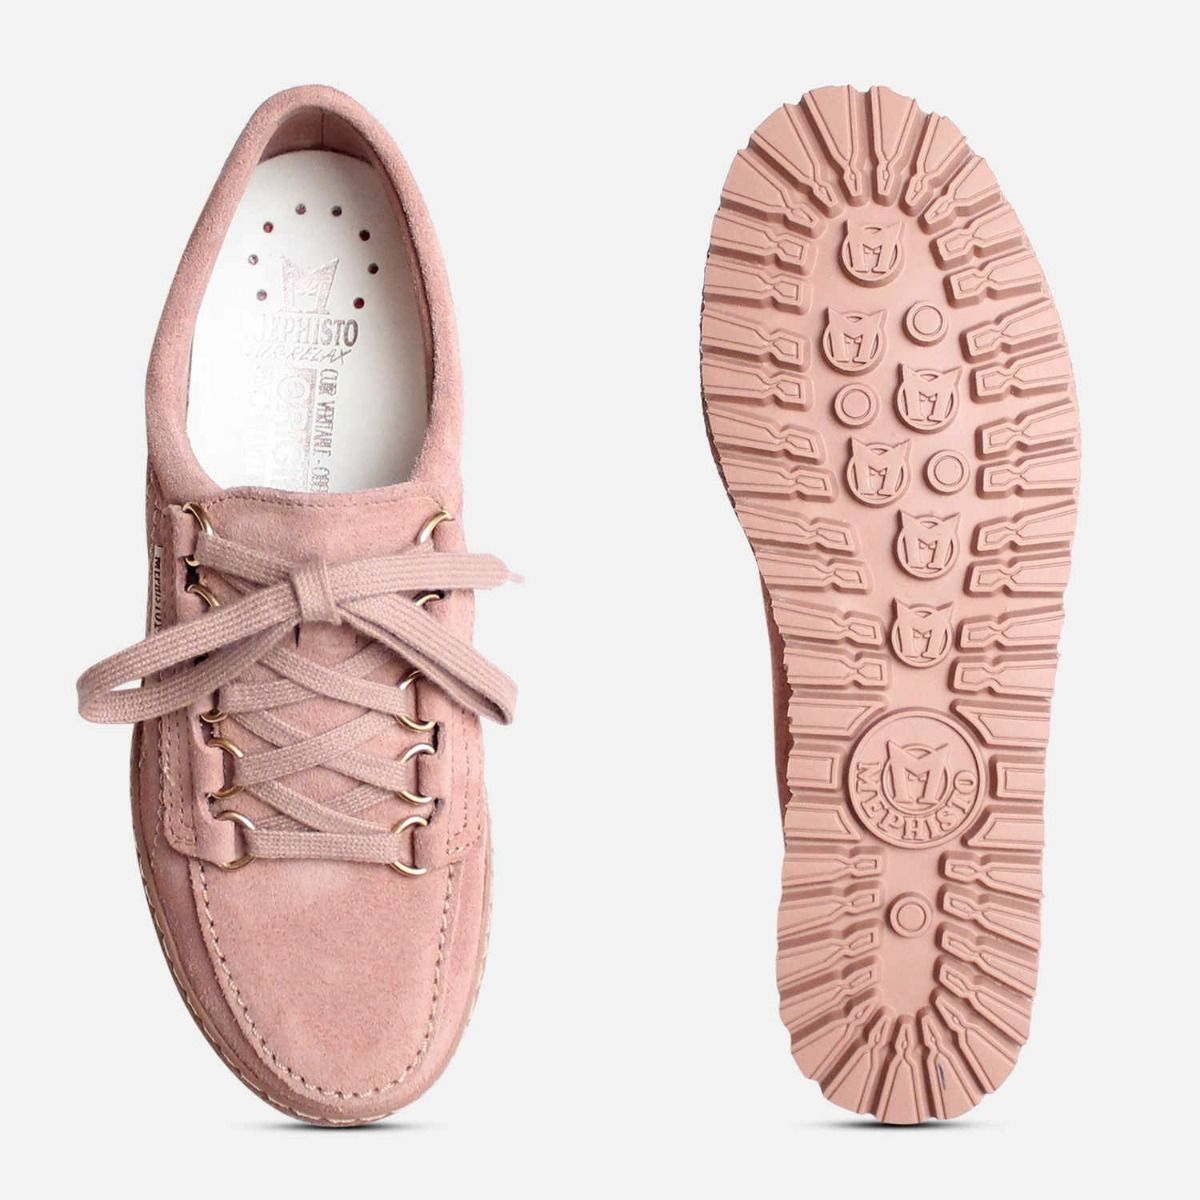 87f63cc0ccb87 Mephisto Lady Shoes in Pastel Pink Suede Leather